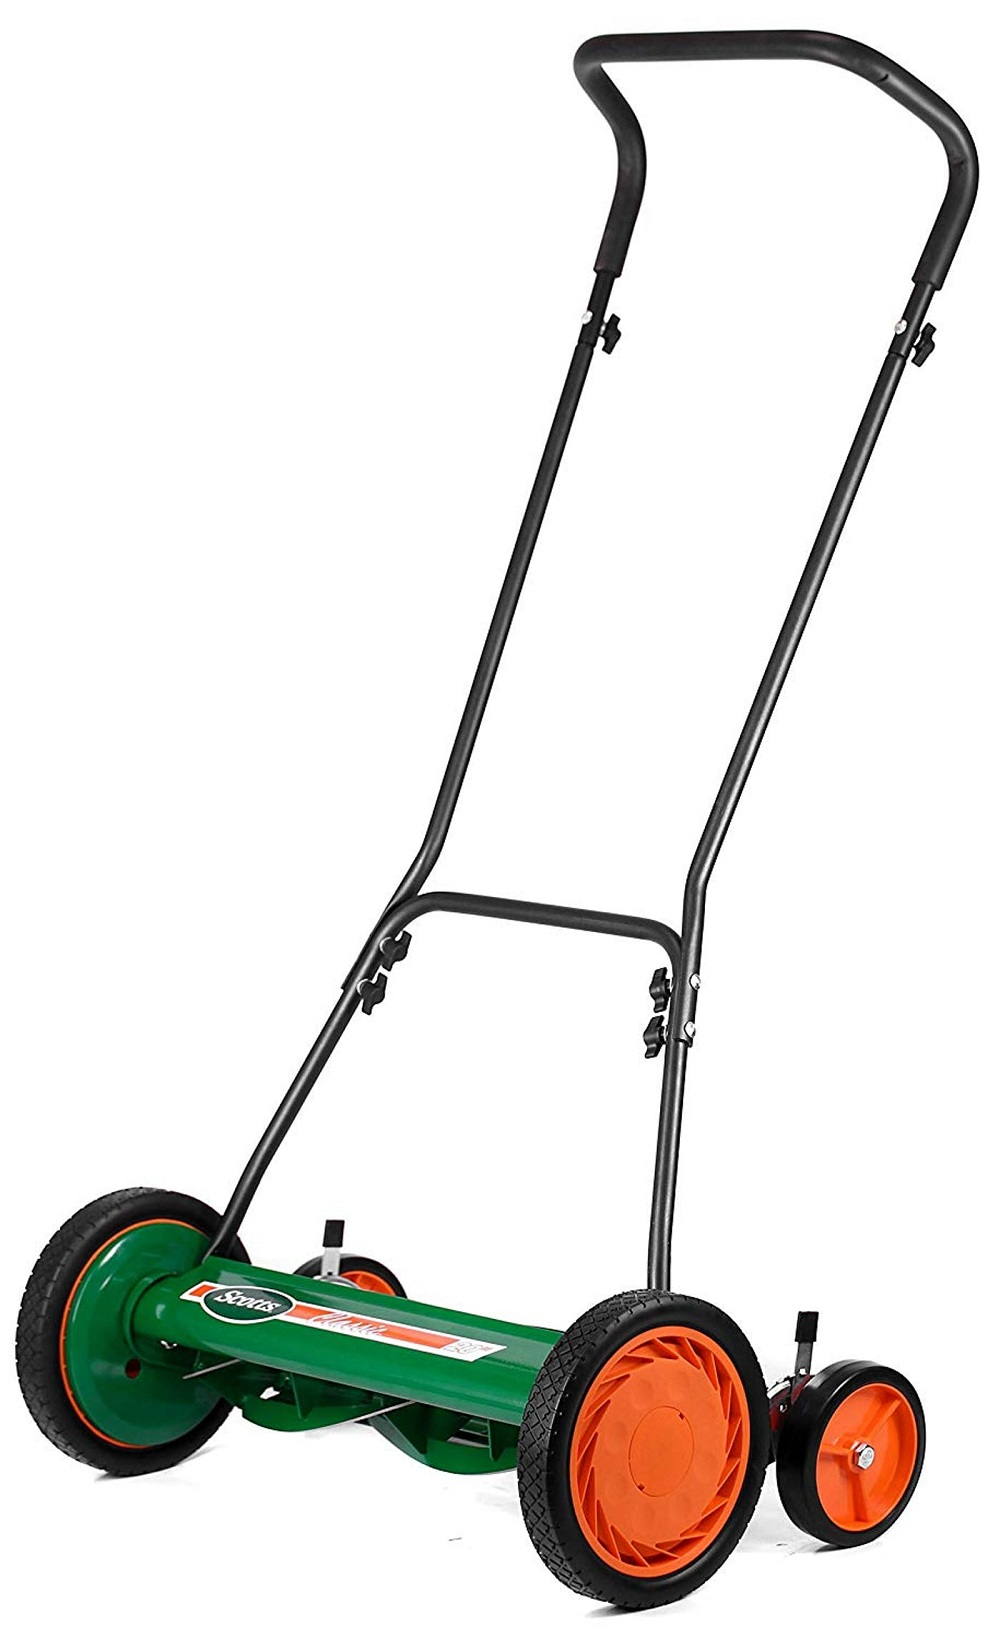 lw1 Small lawnmower options that you can buy online